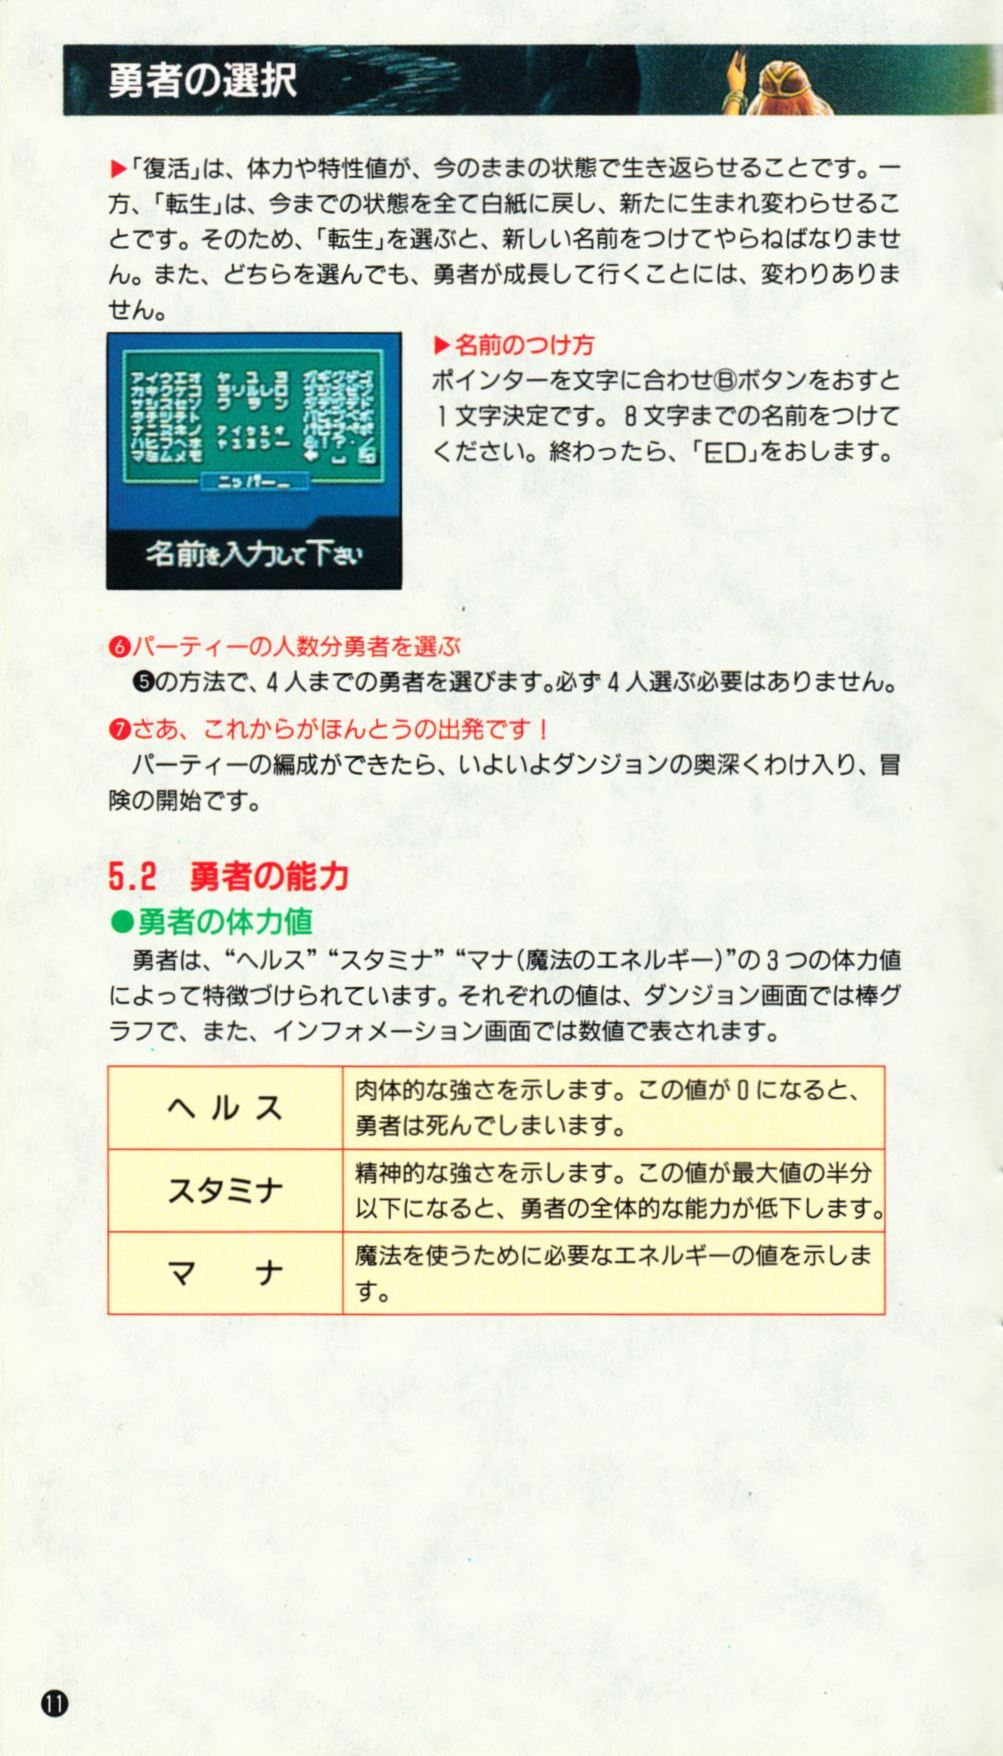 Game - Dungeon Master - JP - Super Famicom - Manual - Page 014 - Scan